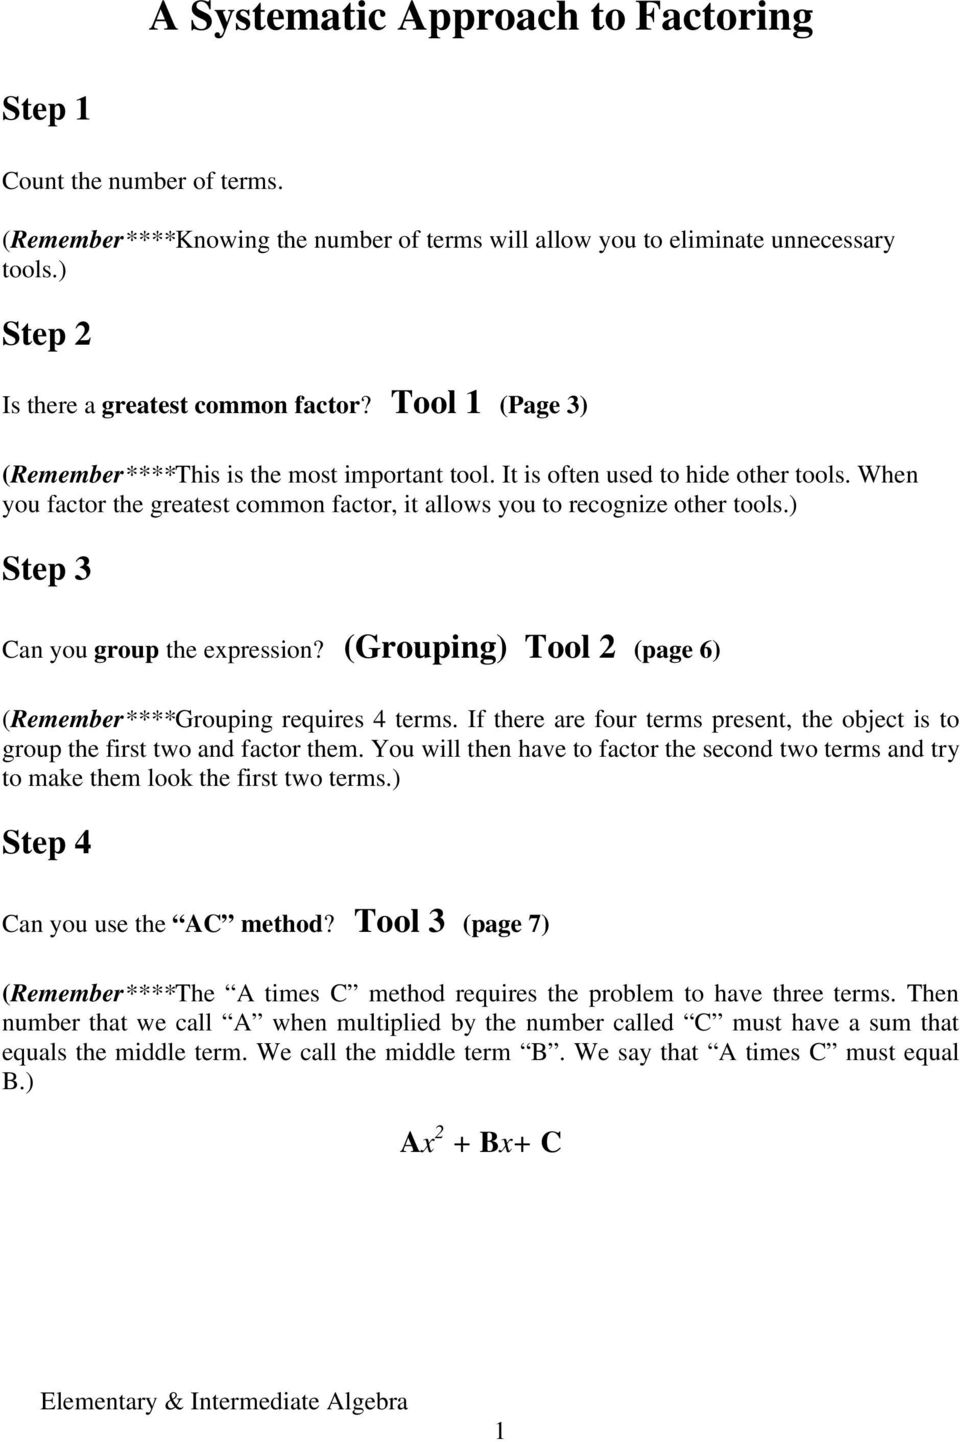 ) Step 3 Can you group the expression? (Grouping) Tool 2 (page 6) (Remember****Grouping requires 4 terms. If there are four terms present, the object is to group the first two and factor them.